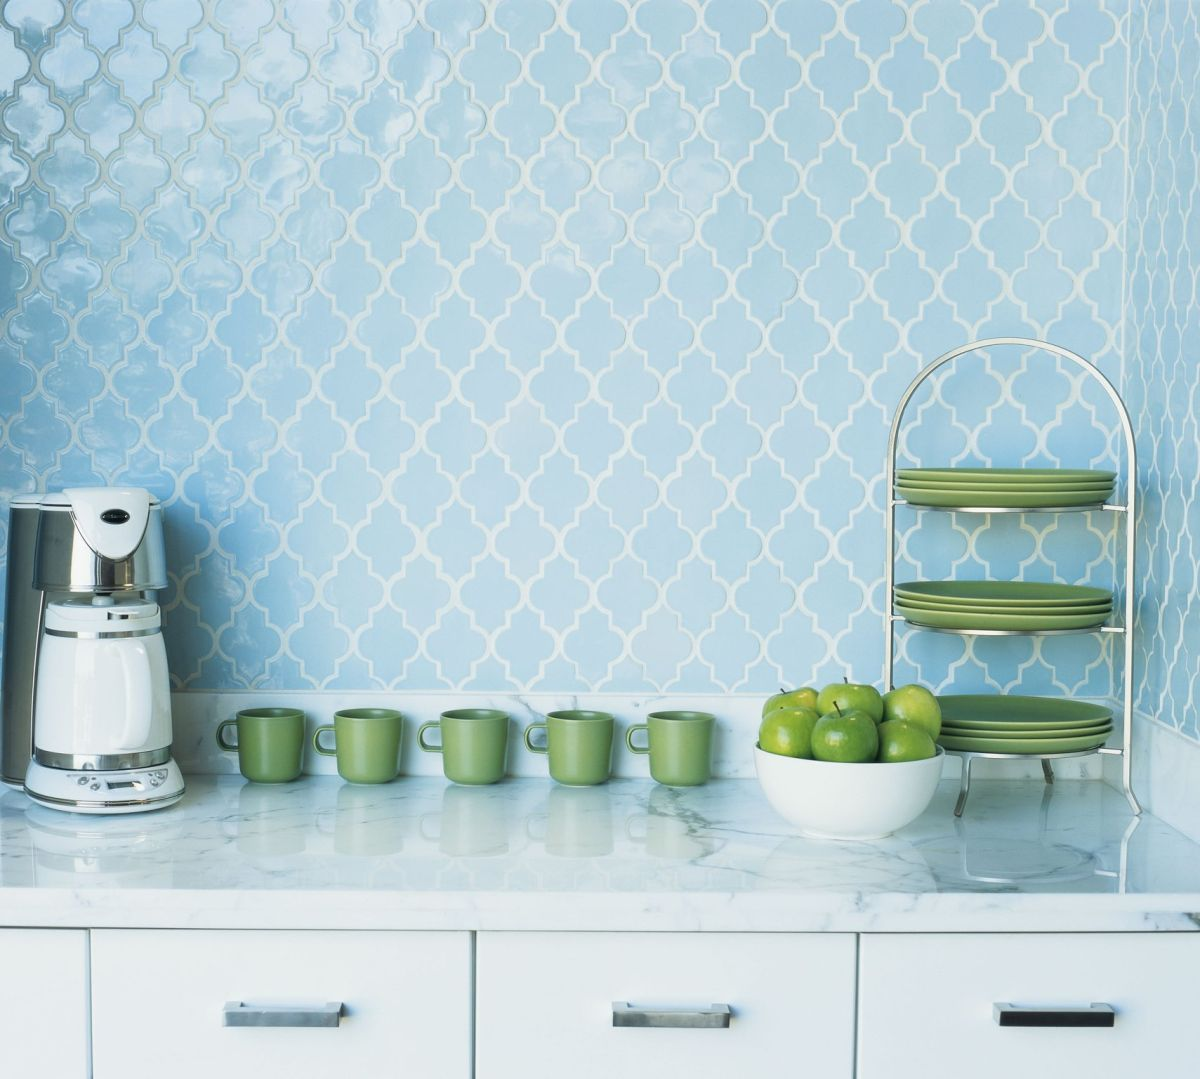 Serenity backsplash tiles